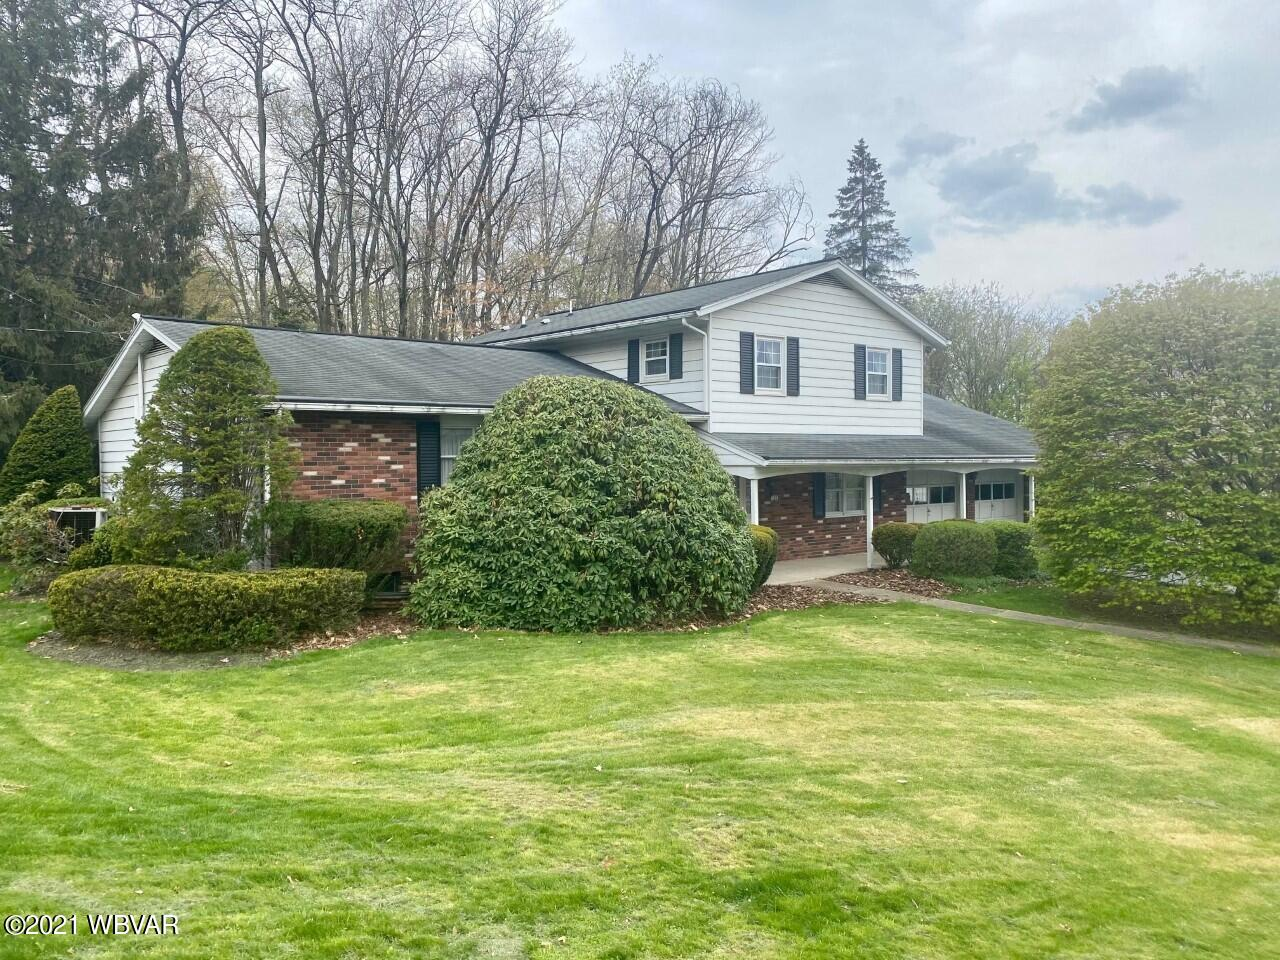 708 CURTIN STREET, S. Williamsport, PA 17702, 3 Bedrooms Bedrooms, ,3 BathroomsBathrooms,Residential,For sale,CURTIN,WB-92434